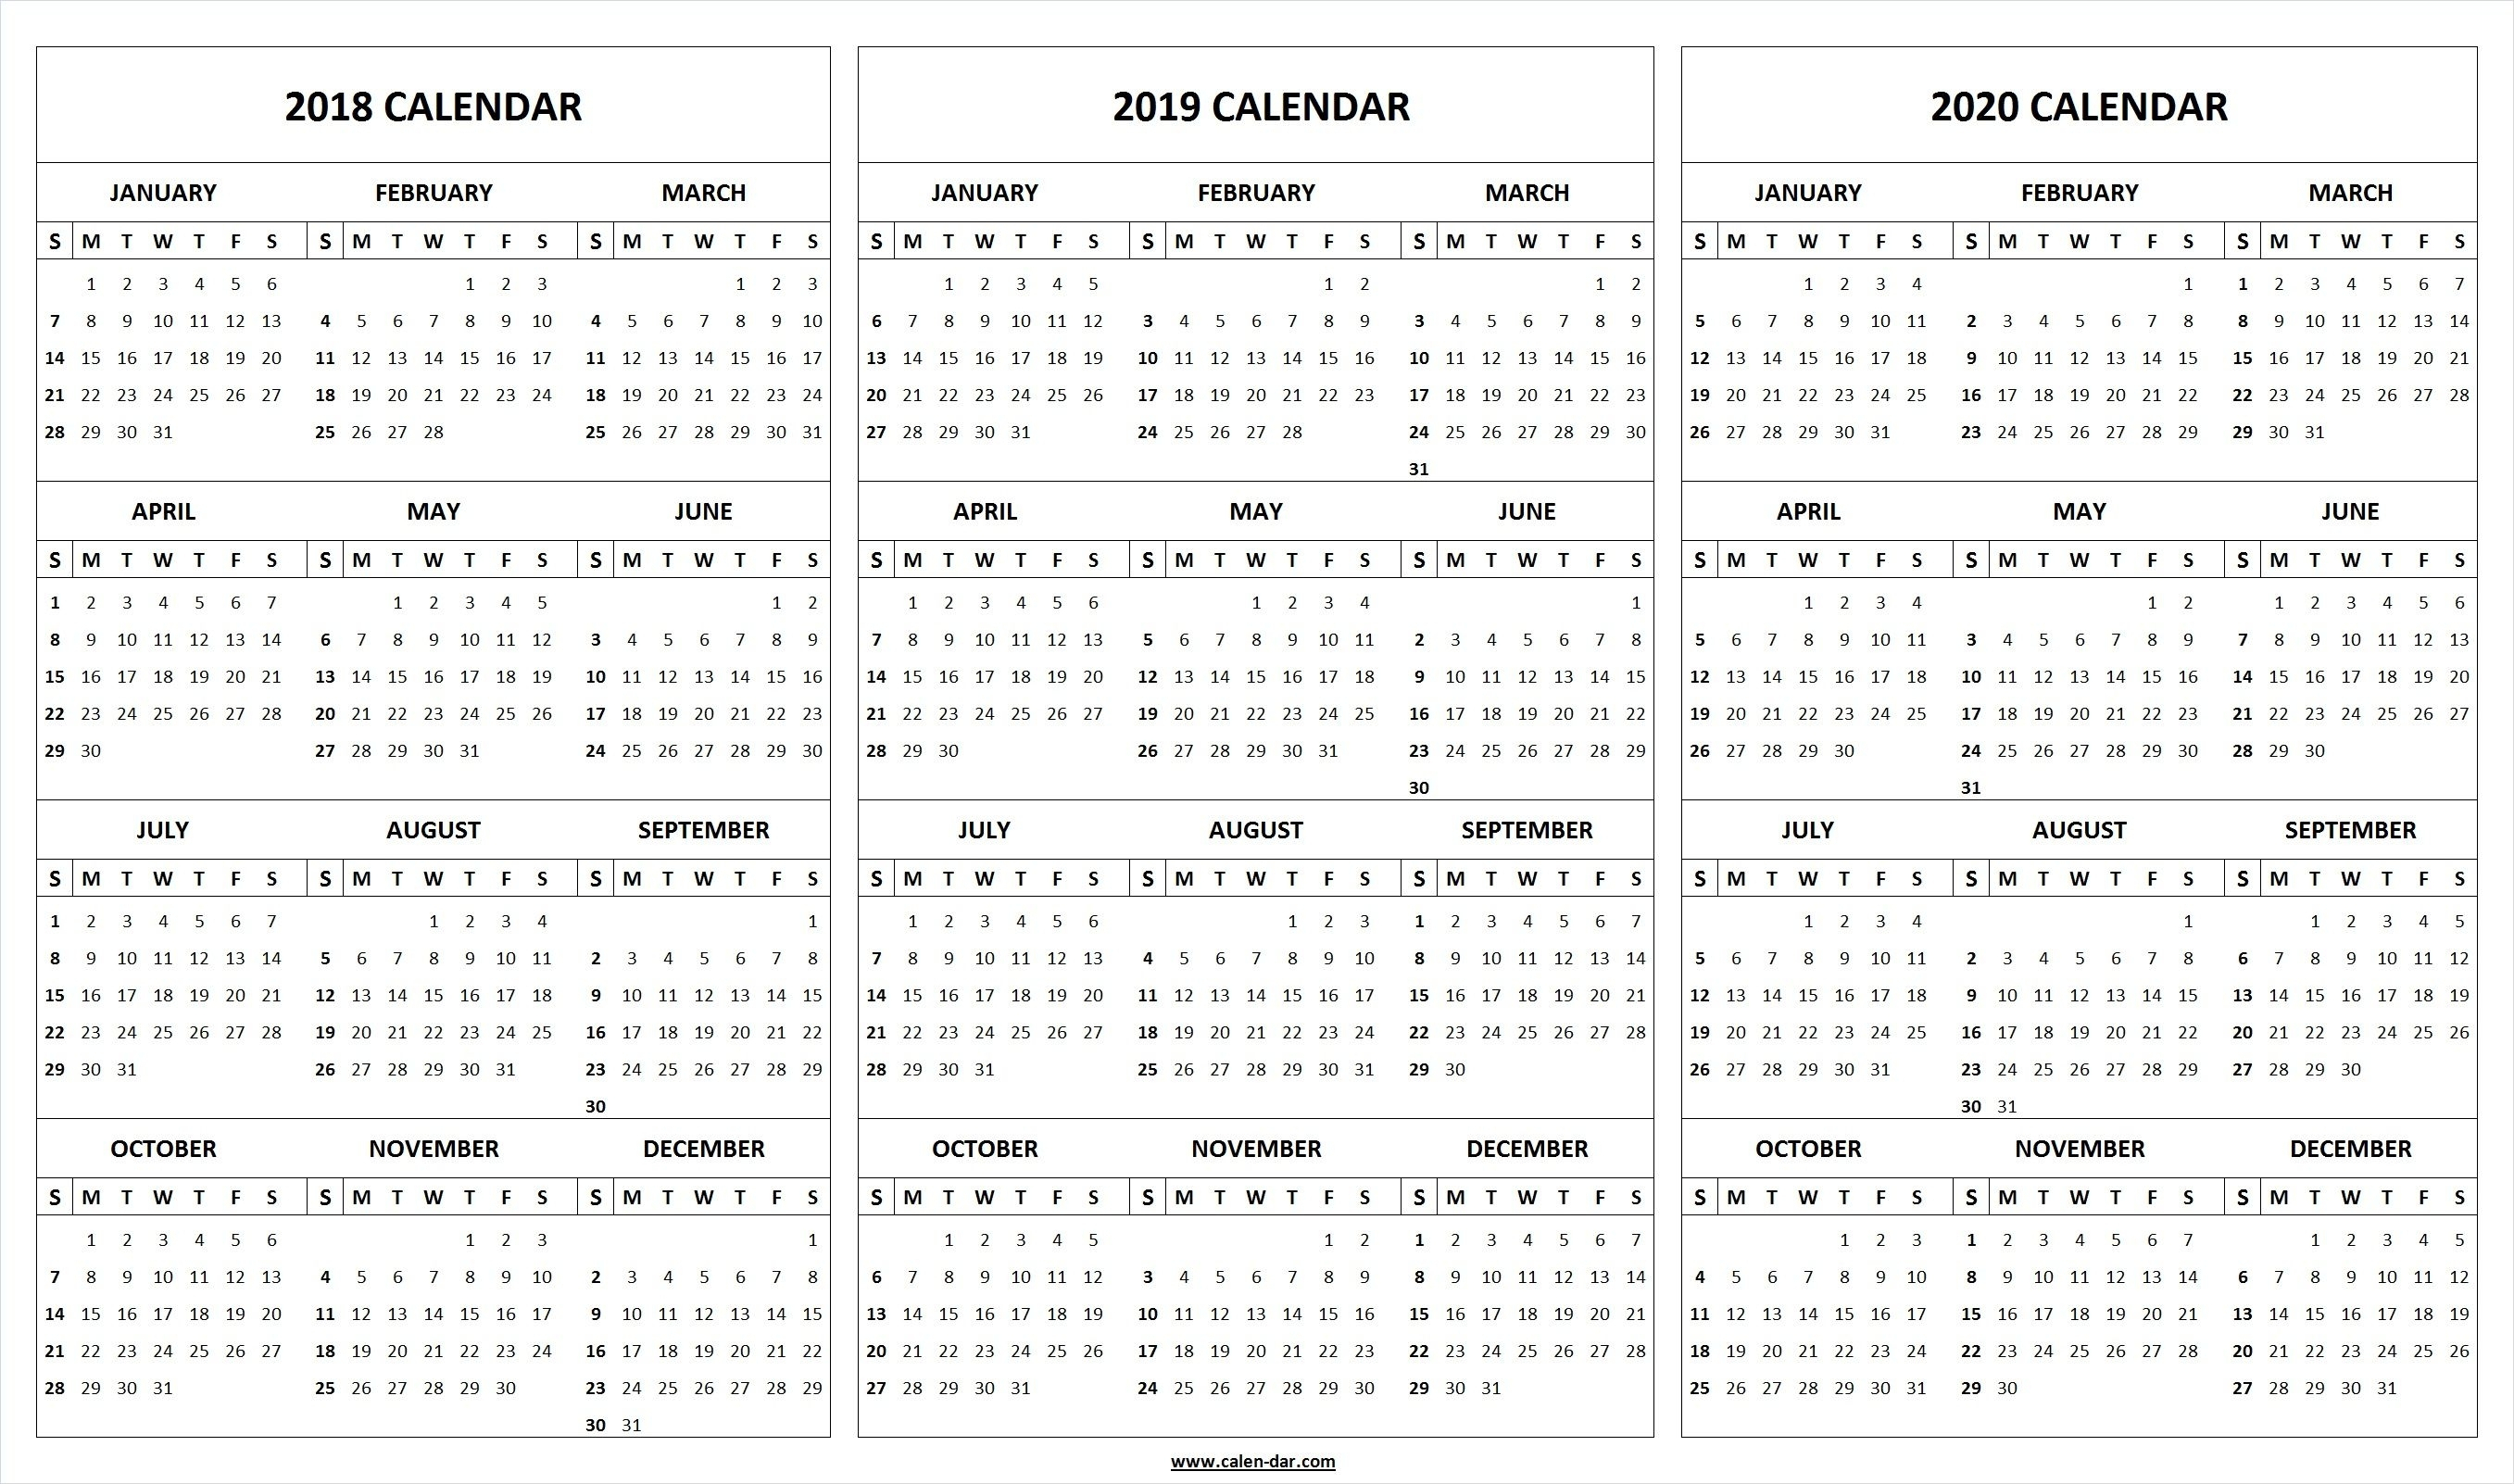 Monthly Printable Calendars 2020 Half Page - Calendar for Half Page 2020 Calender